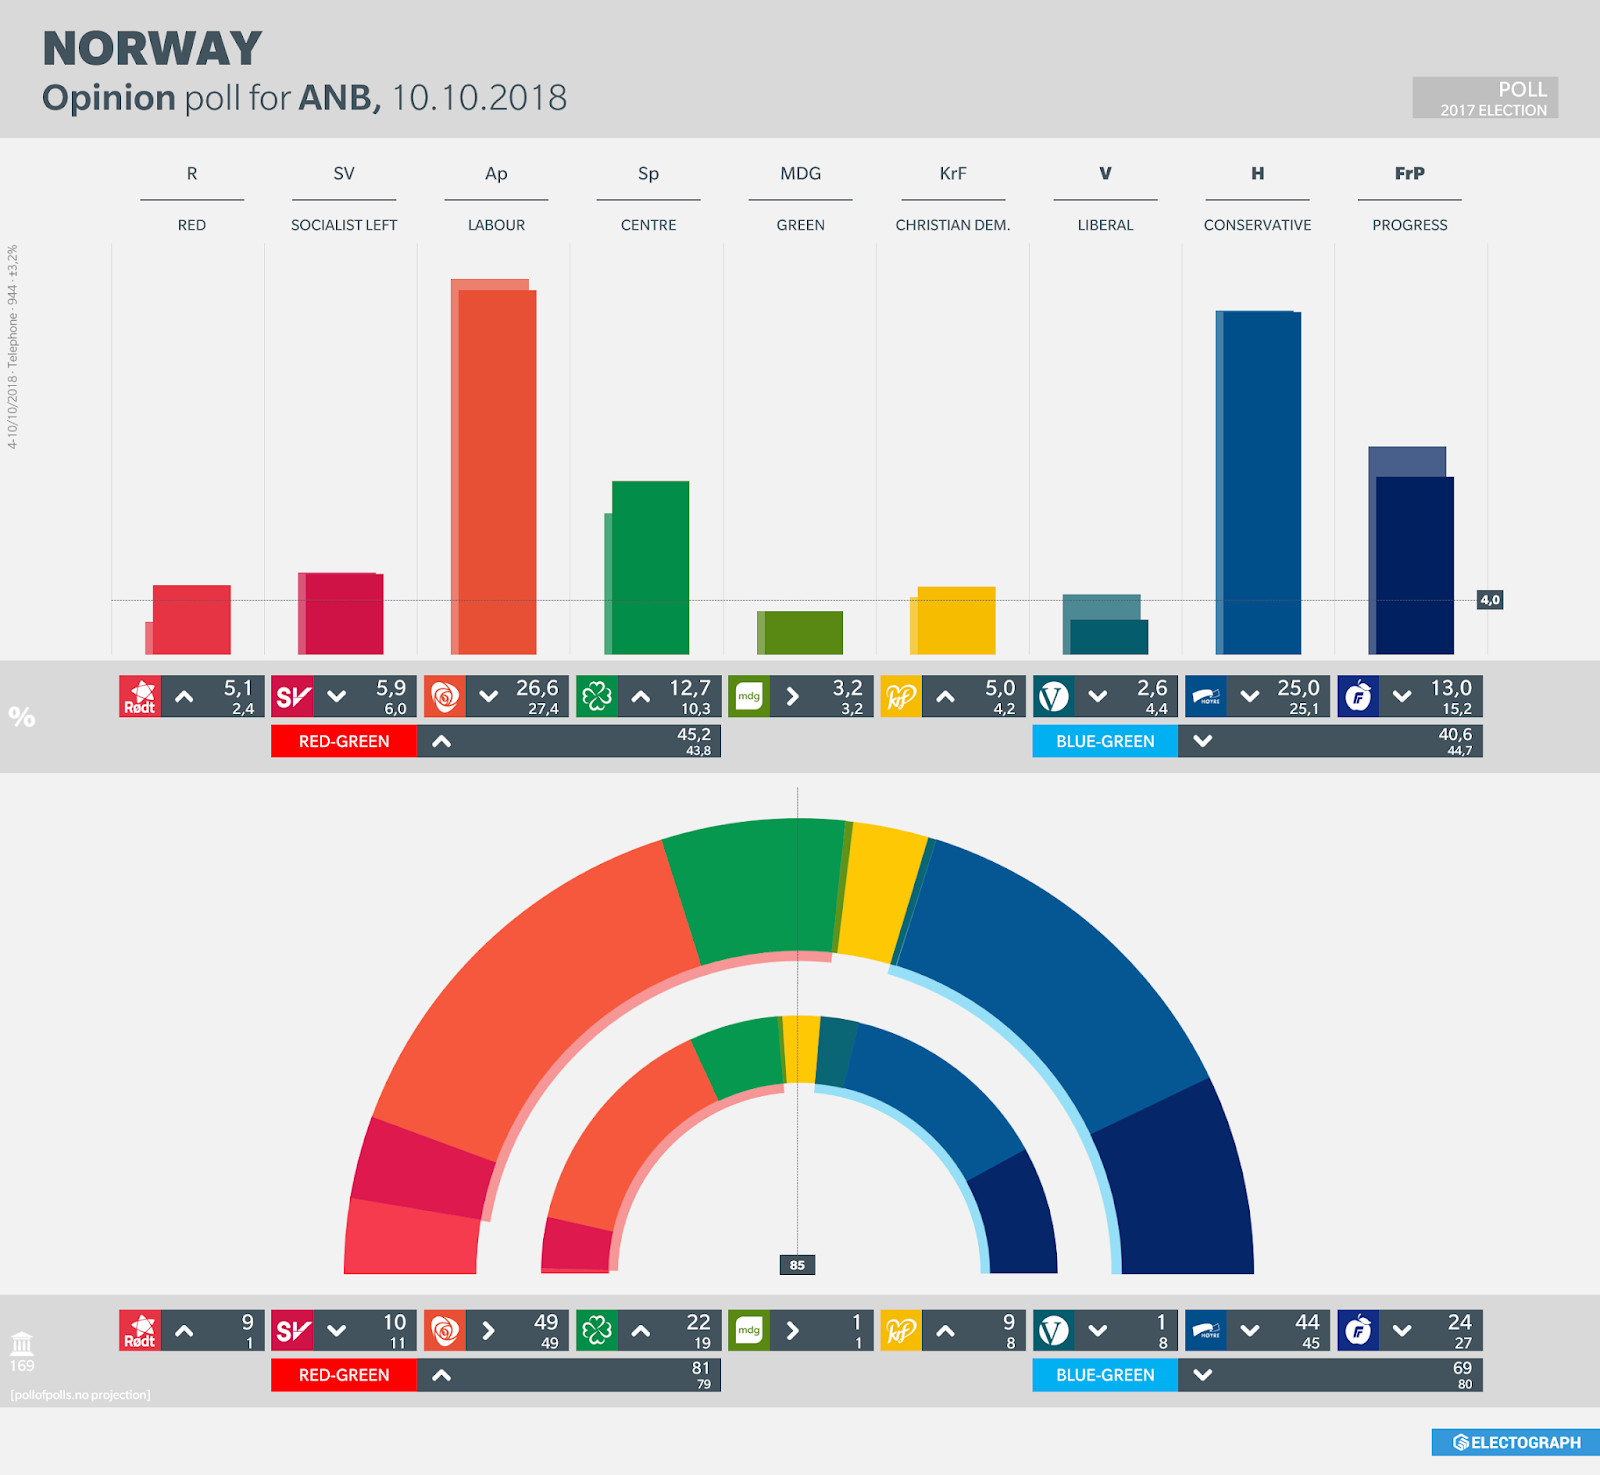 NORWAY: Opinion poll chart for ANB, October 2018